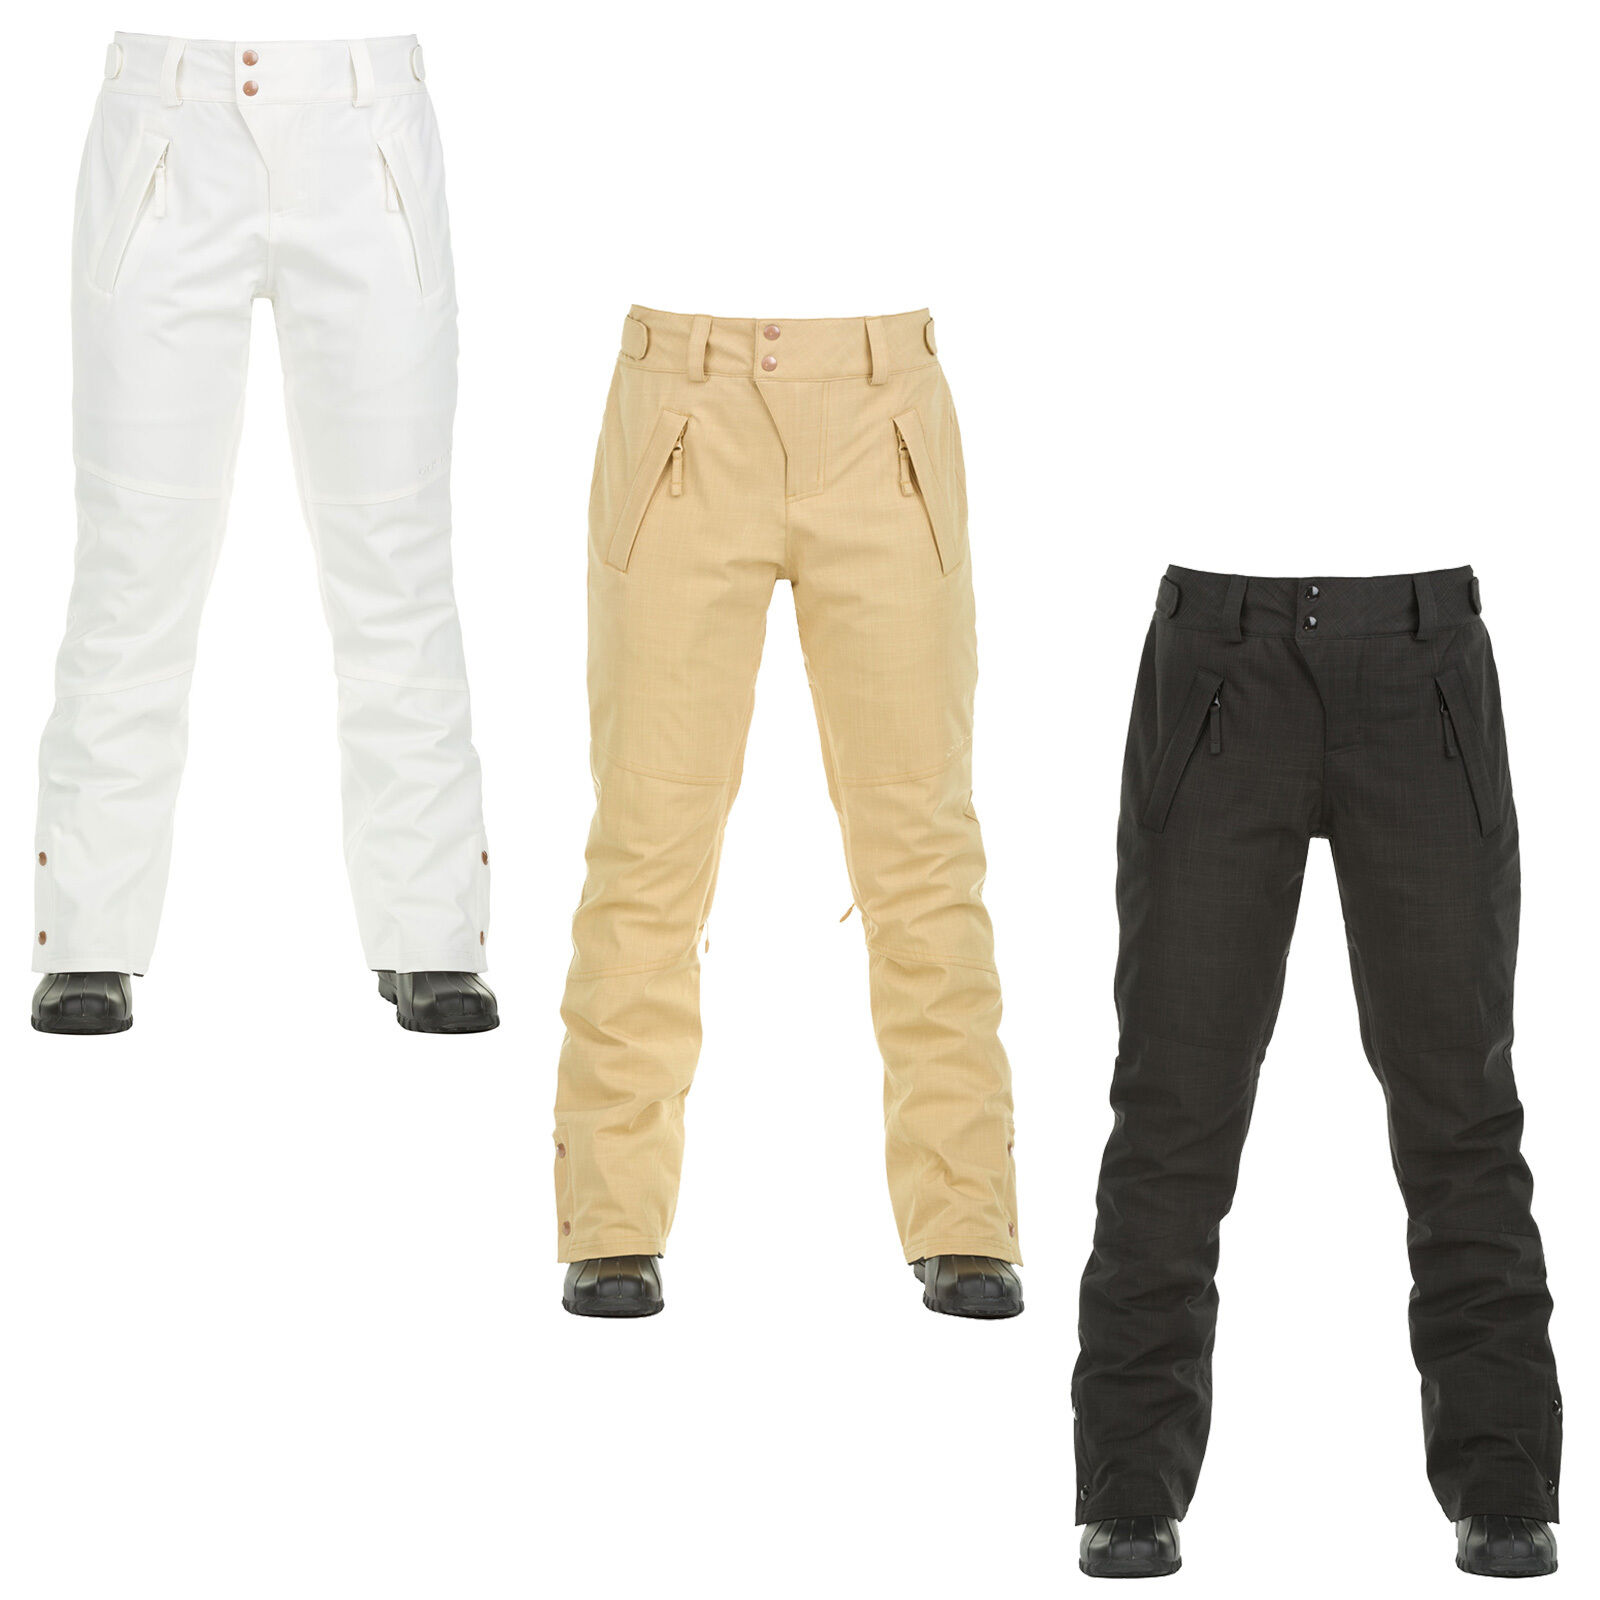 Oneill o'Neill  Glamour Pant Ladies Ski Snowboard New  online store